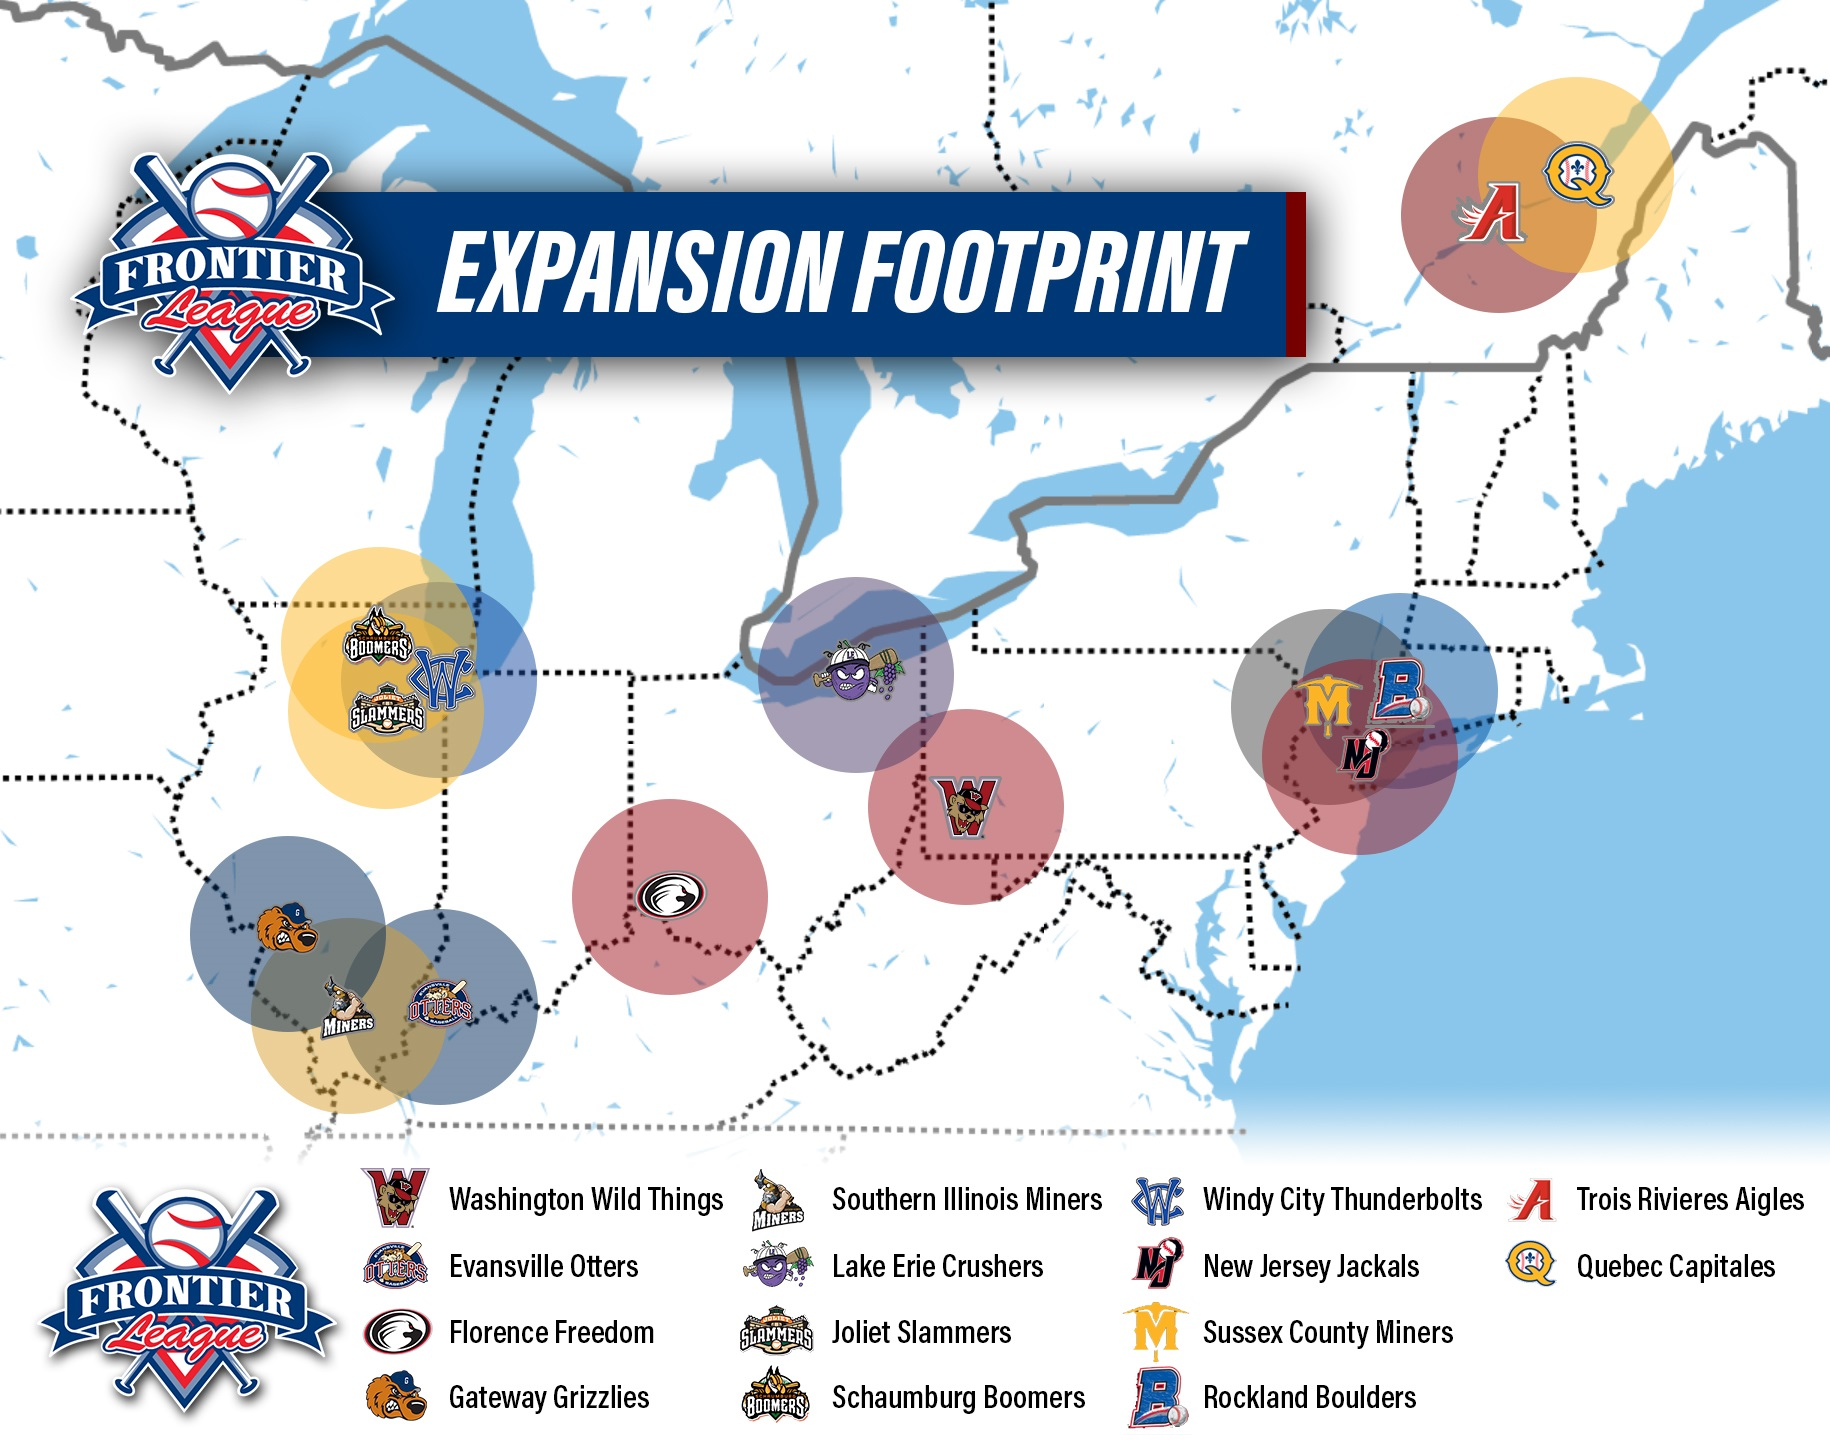 Frontier League map - October 16, 2019 Photo on OurSports ... on boundary map, freedom map, allegiant map, old west map, mercer map, supreme map, ata map, sun country map, empire map, at&t map, lakota map, pathfinder map, pierce map, dateline map, union map, dickinson map, air canada map, erie map, asiana map, quest map,